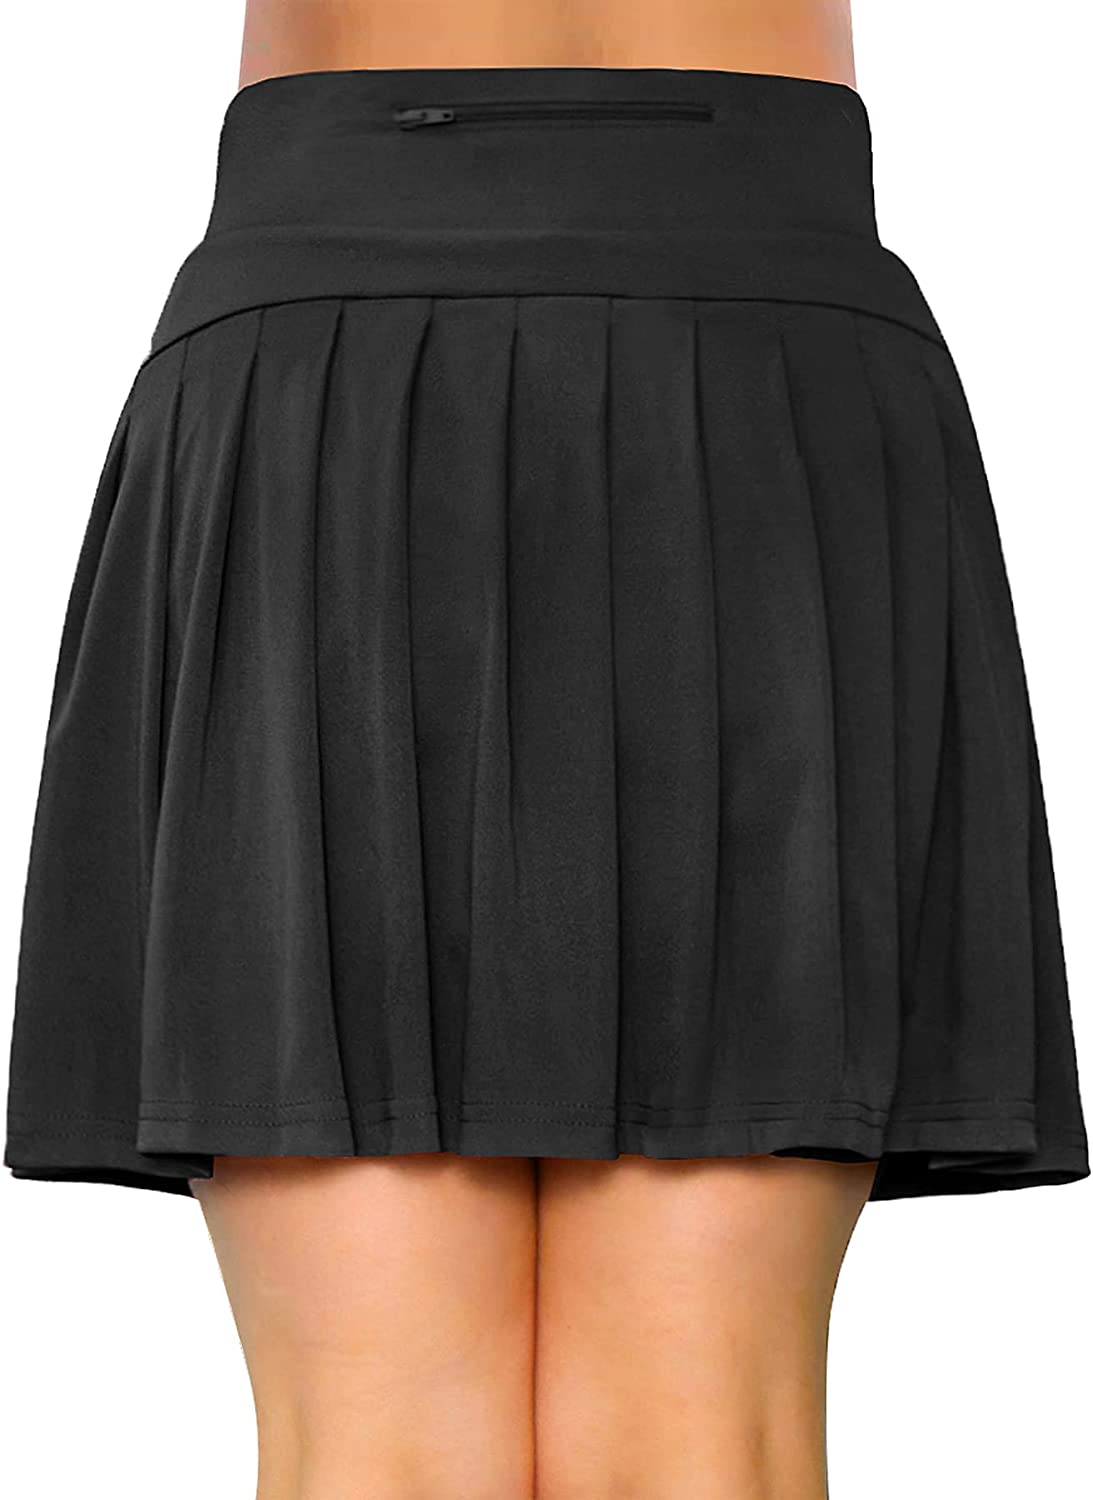 IZZY 5 popular + TOBY Athletic Pleated Tennis Women Shorts with NEW before selling ☆ for Skirts